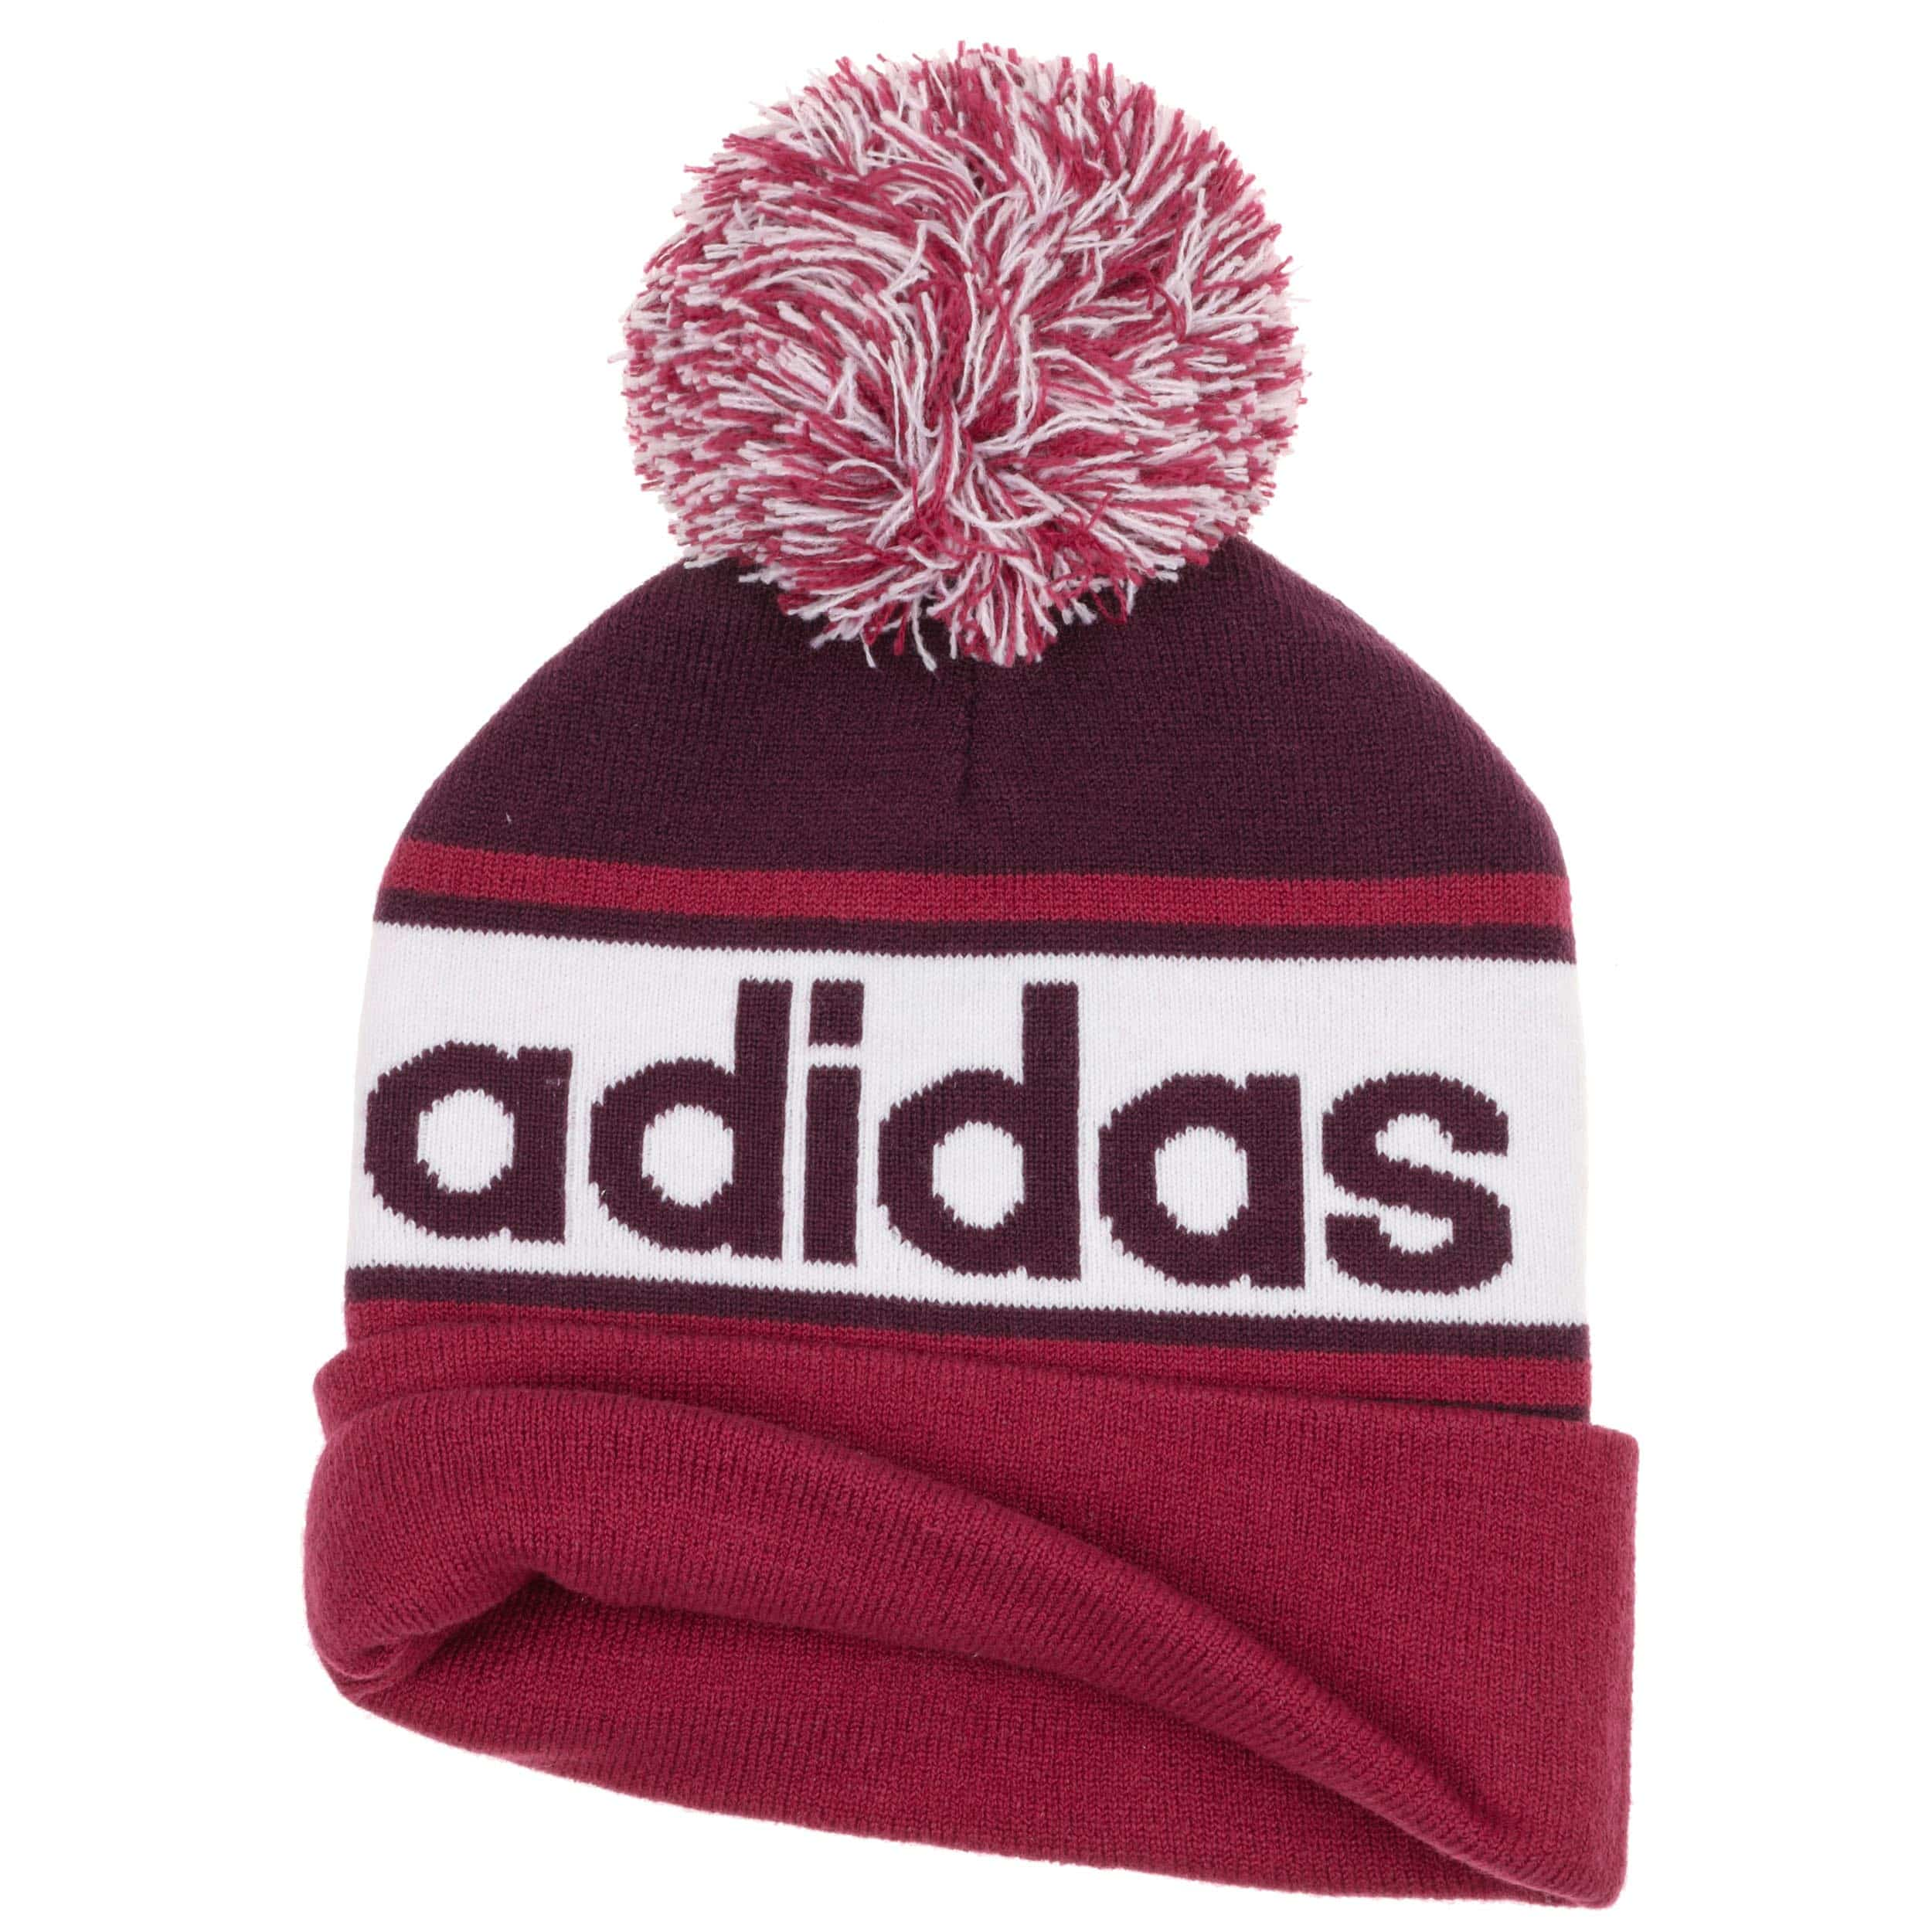 ... Woolie Beanie Pompom Hat by adidas - bordeaux 1 ... 1a941f4123f